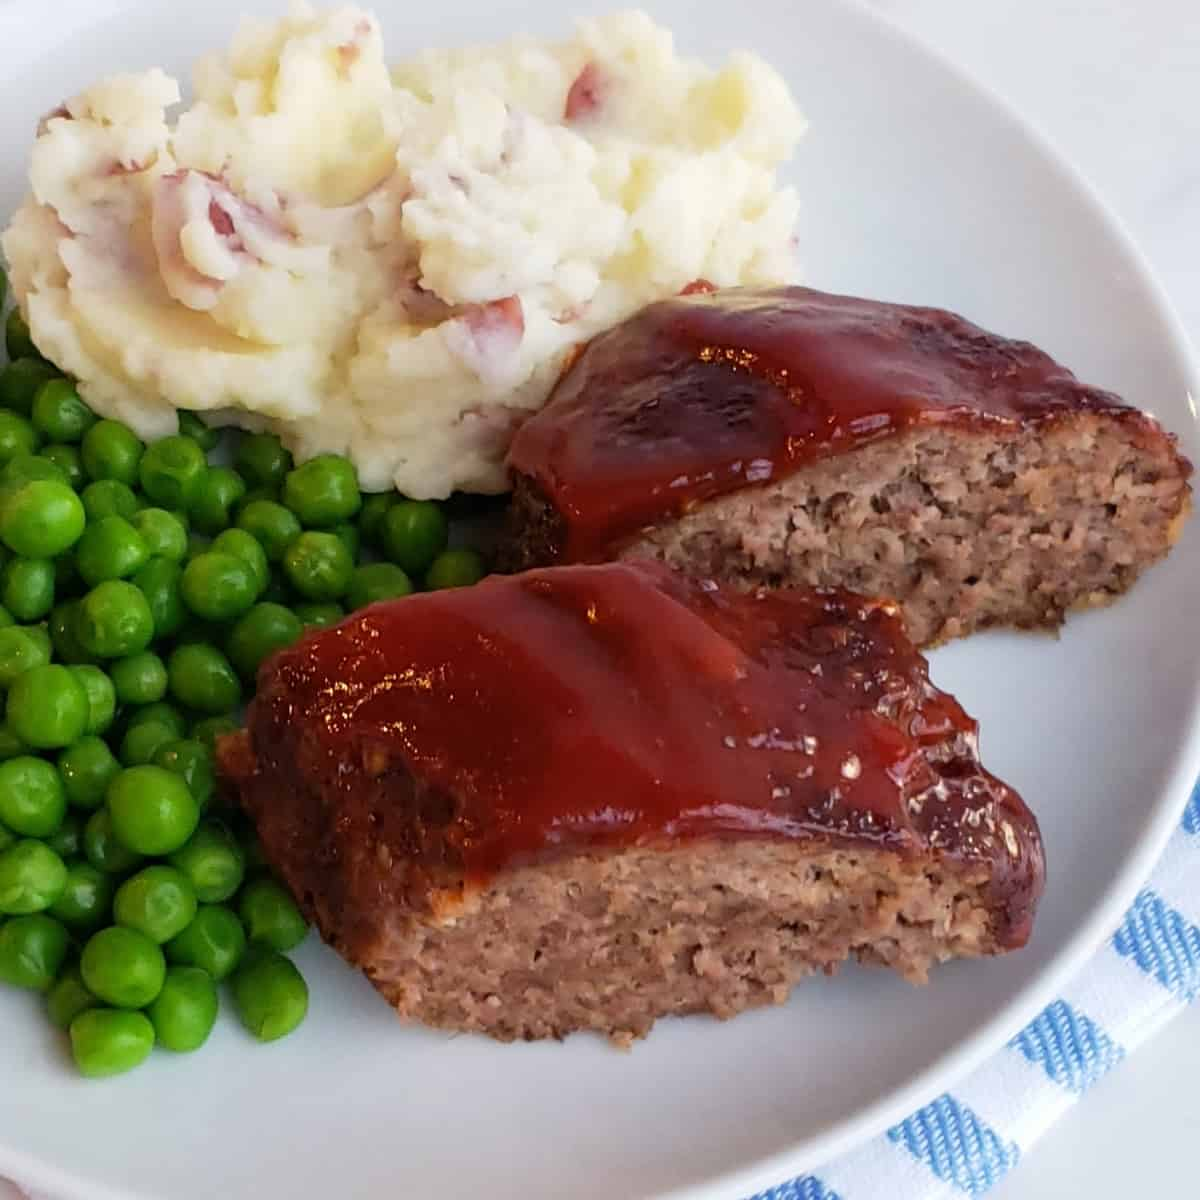 Sliced meatloaf with ketchup sauce on top served on a plate of mashed potatoes and English peas